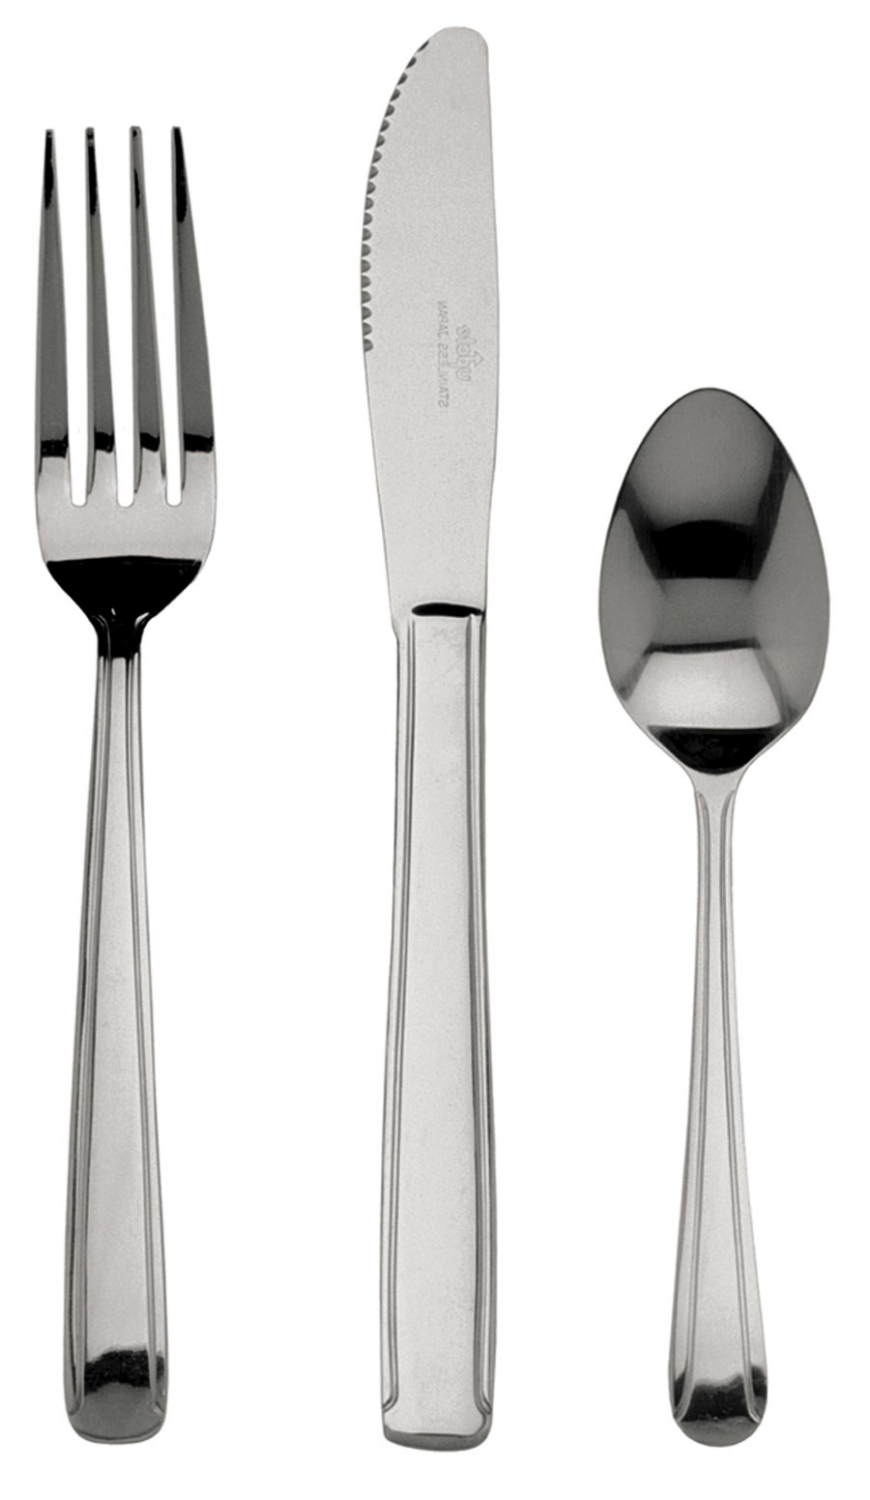 Update International DOM-12B Dominion Medium Weight Bouillon Spoon - 1 doz